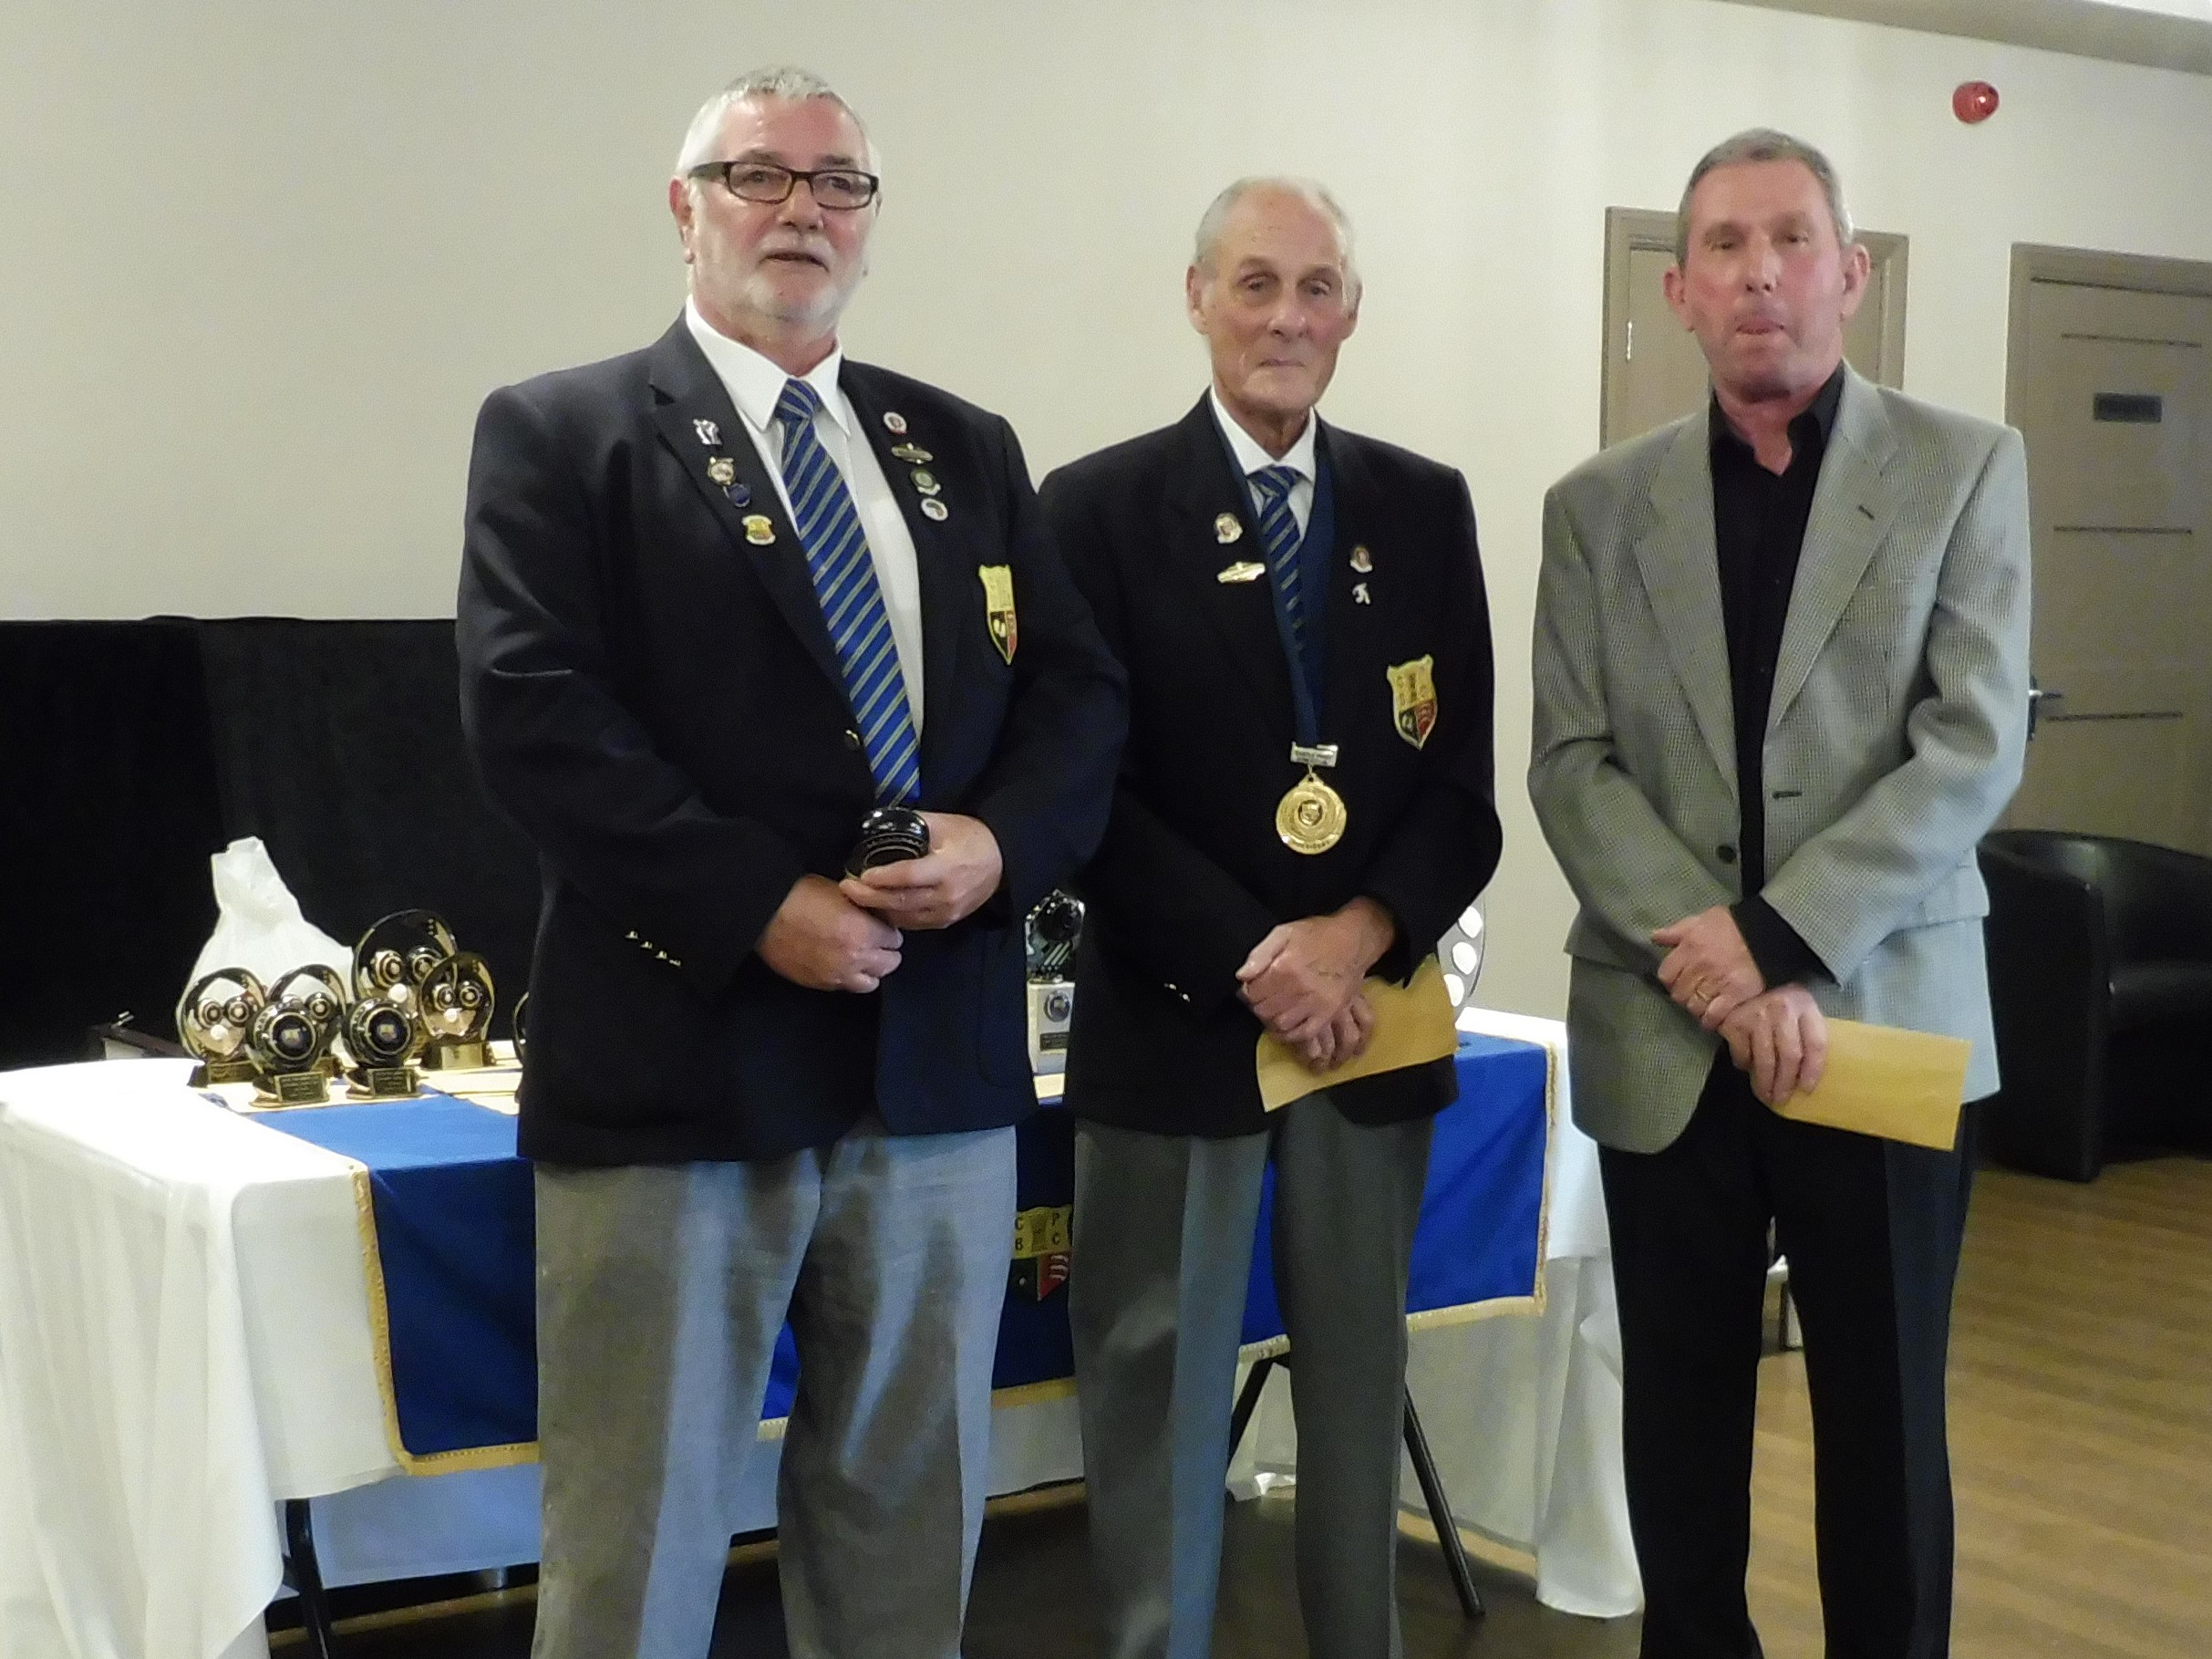 Cleanaway Triples Runners-Up - Brian Blake, Tom White and Keith Emberson